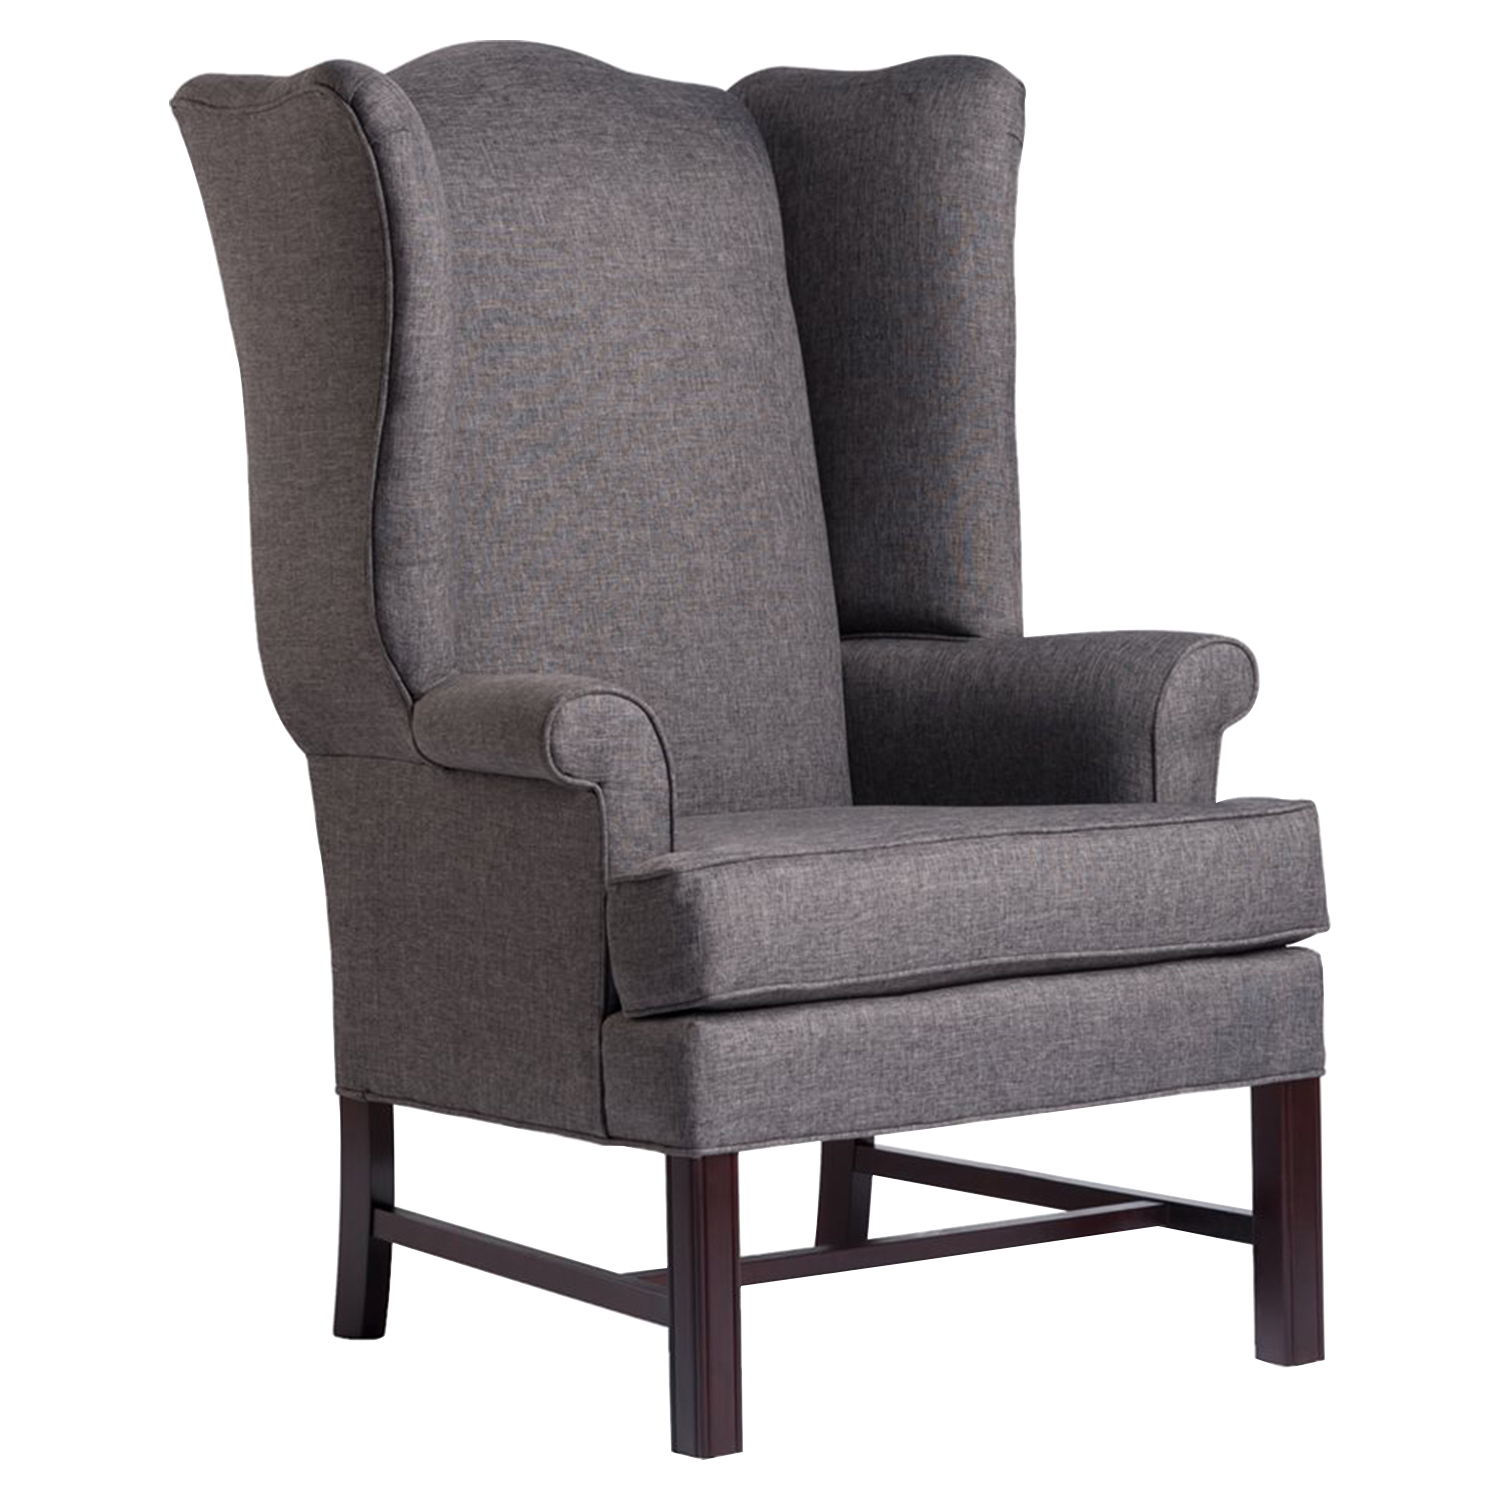 Chippendale Wingback Chair - Jitterbug Gray, Cherry